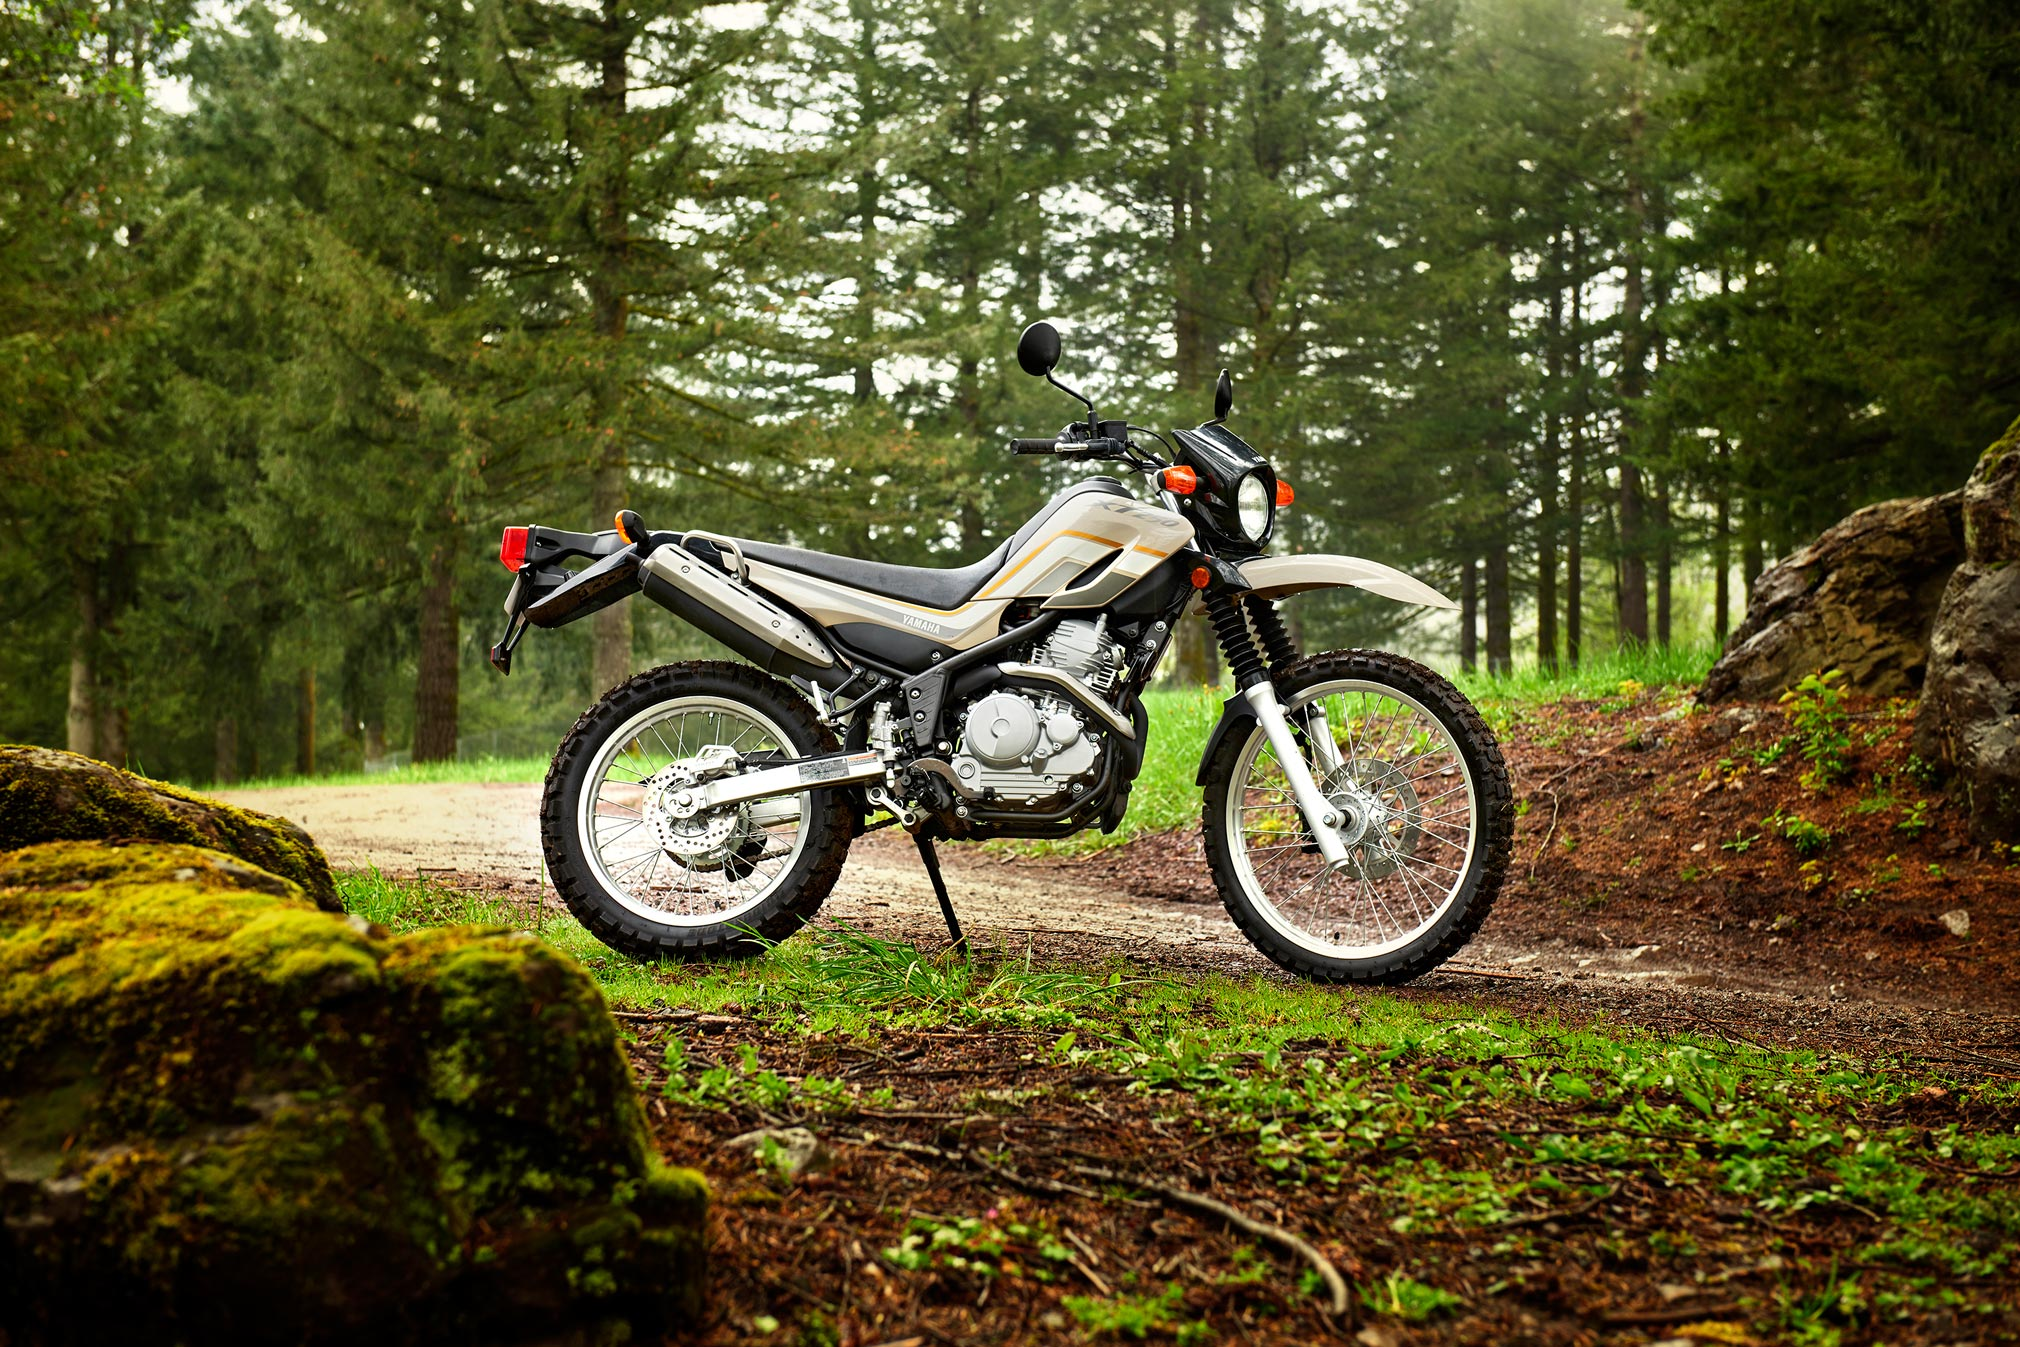 2020 Yamaha Xt250 Guide Total Motorcycle